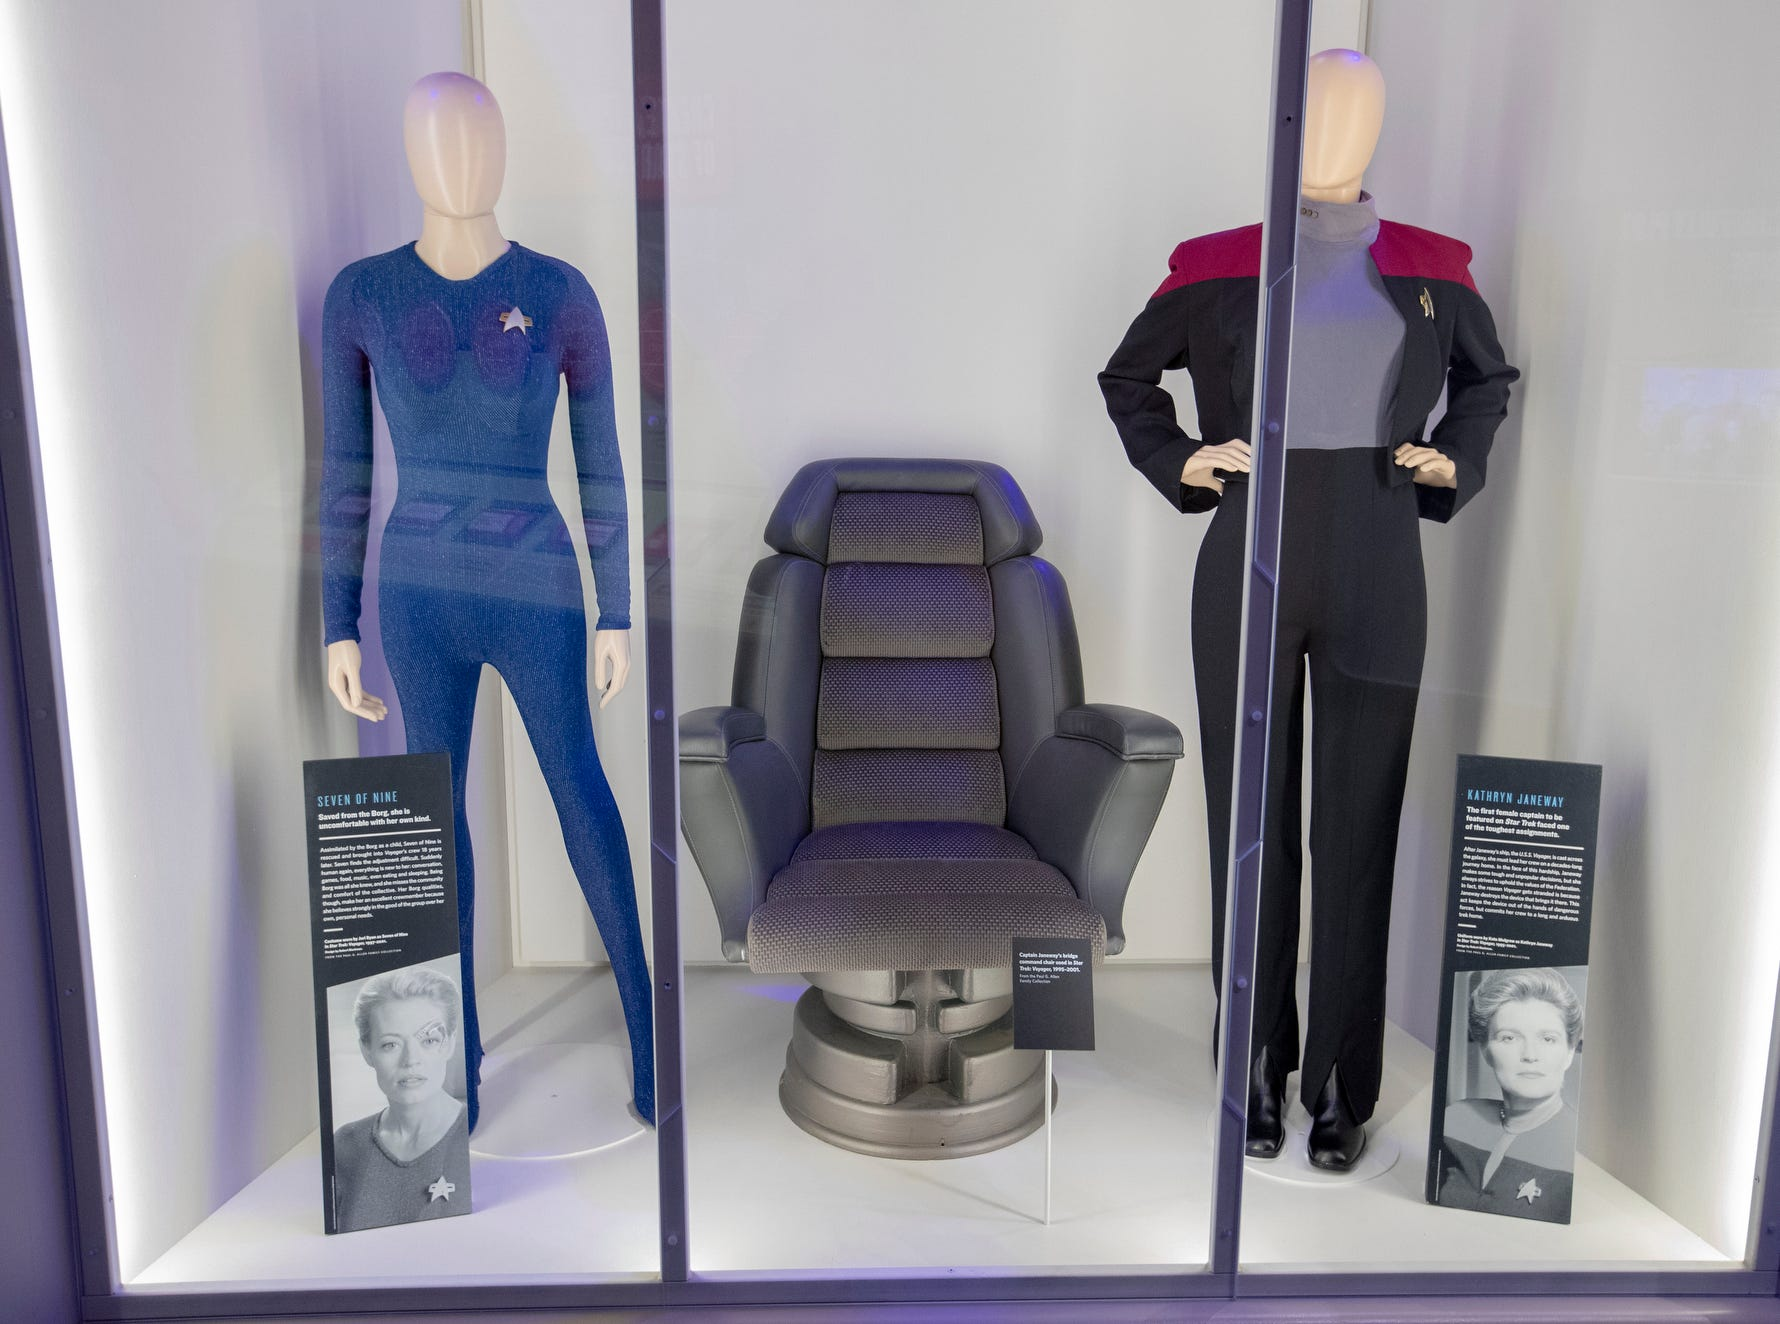 """Uniforms for """"Star Trek: Voyager"""" characters Seven of Nine (left) and Kathryn Janeway are seen at The Children's Museum of Indianapolis, Wednesday, Jan. 23, 2019. The """"Star Trek: Exploring New Worlds"""" exhibit is made up of set pieces, ship models and outfits used during various Star Trek shows and movies and is on display at the museum from Feb. 2 through April 7, 2019."""